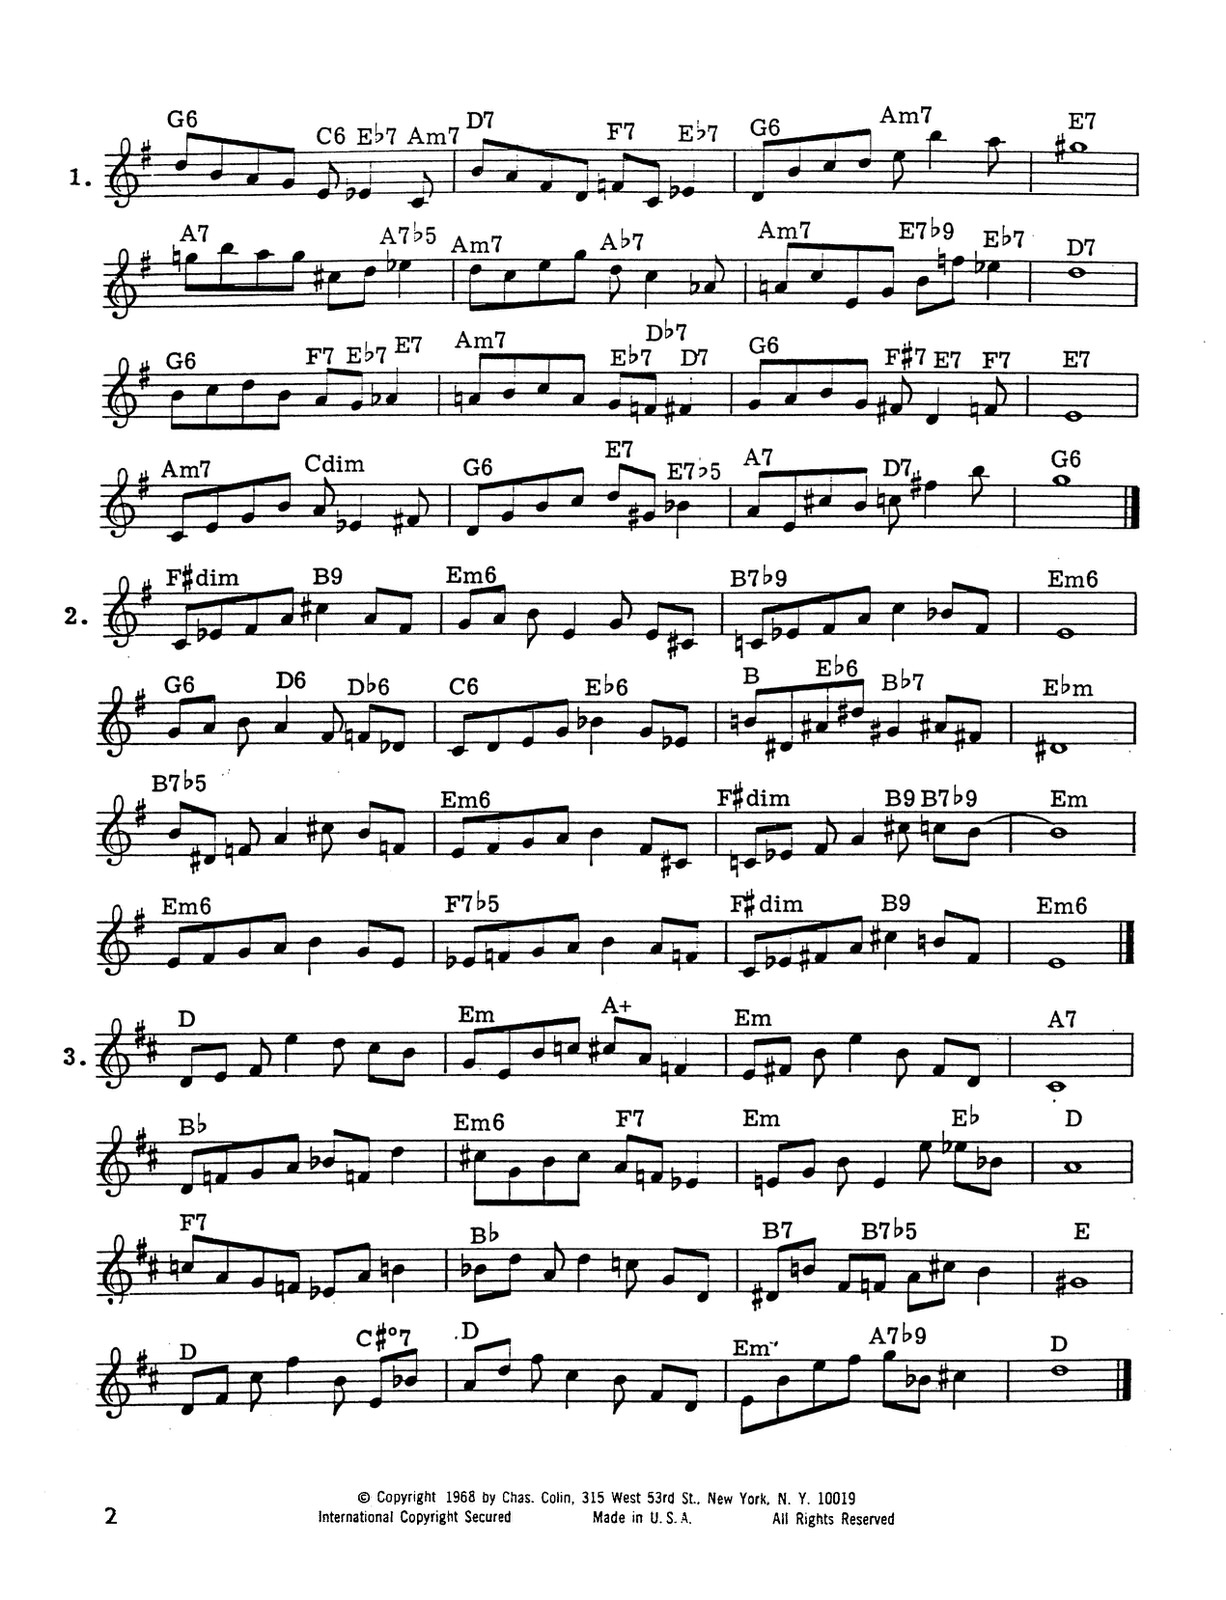 Allard, Advanced Rhythms 2